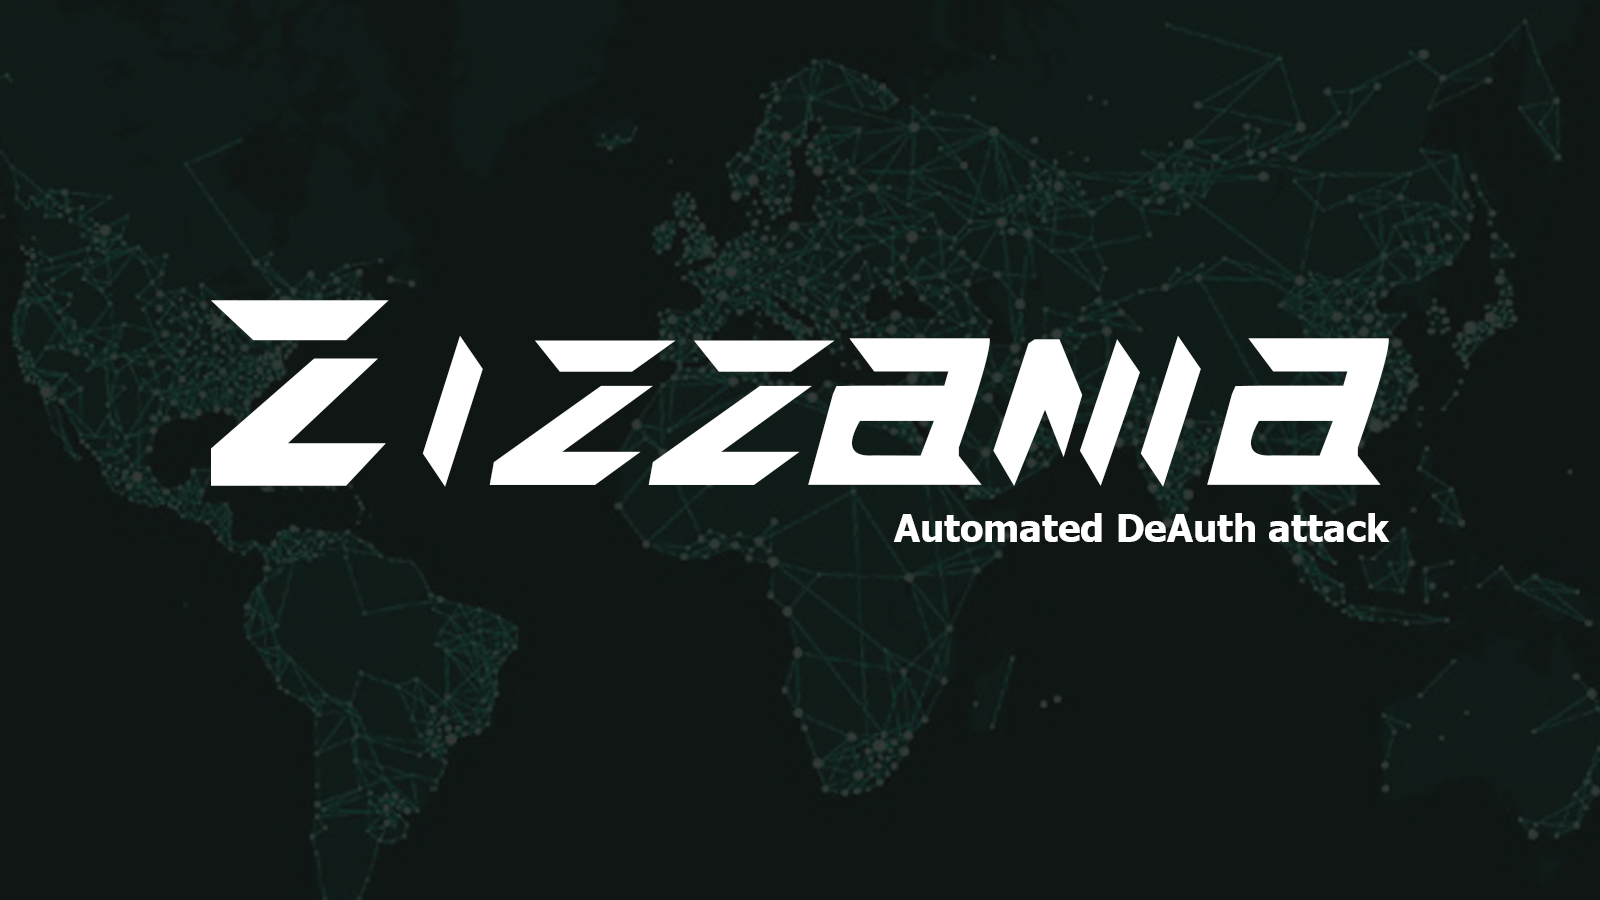 Zizzania - Automated DeAuth Attack